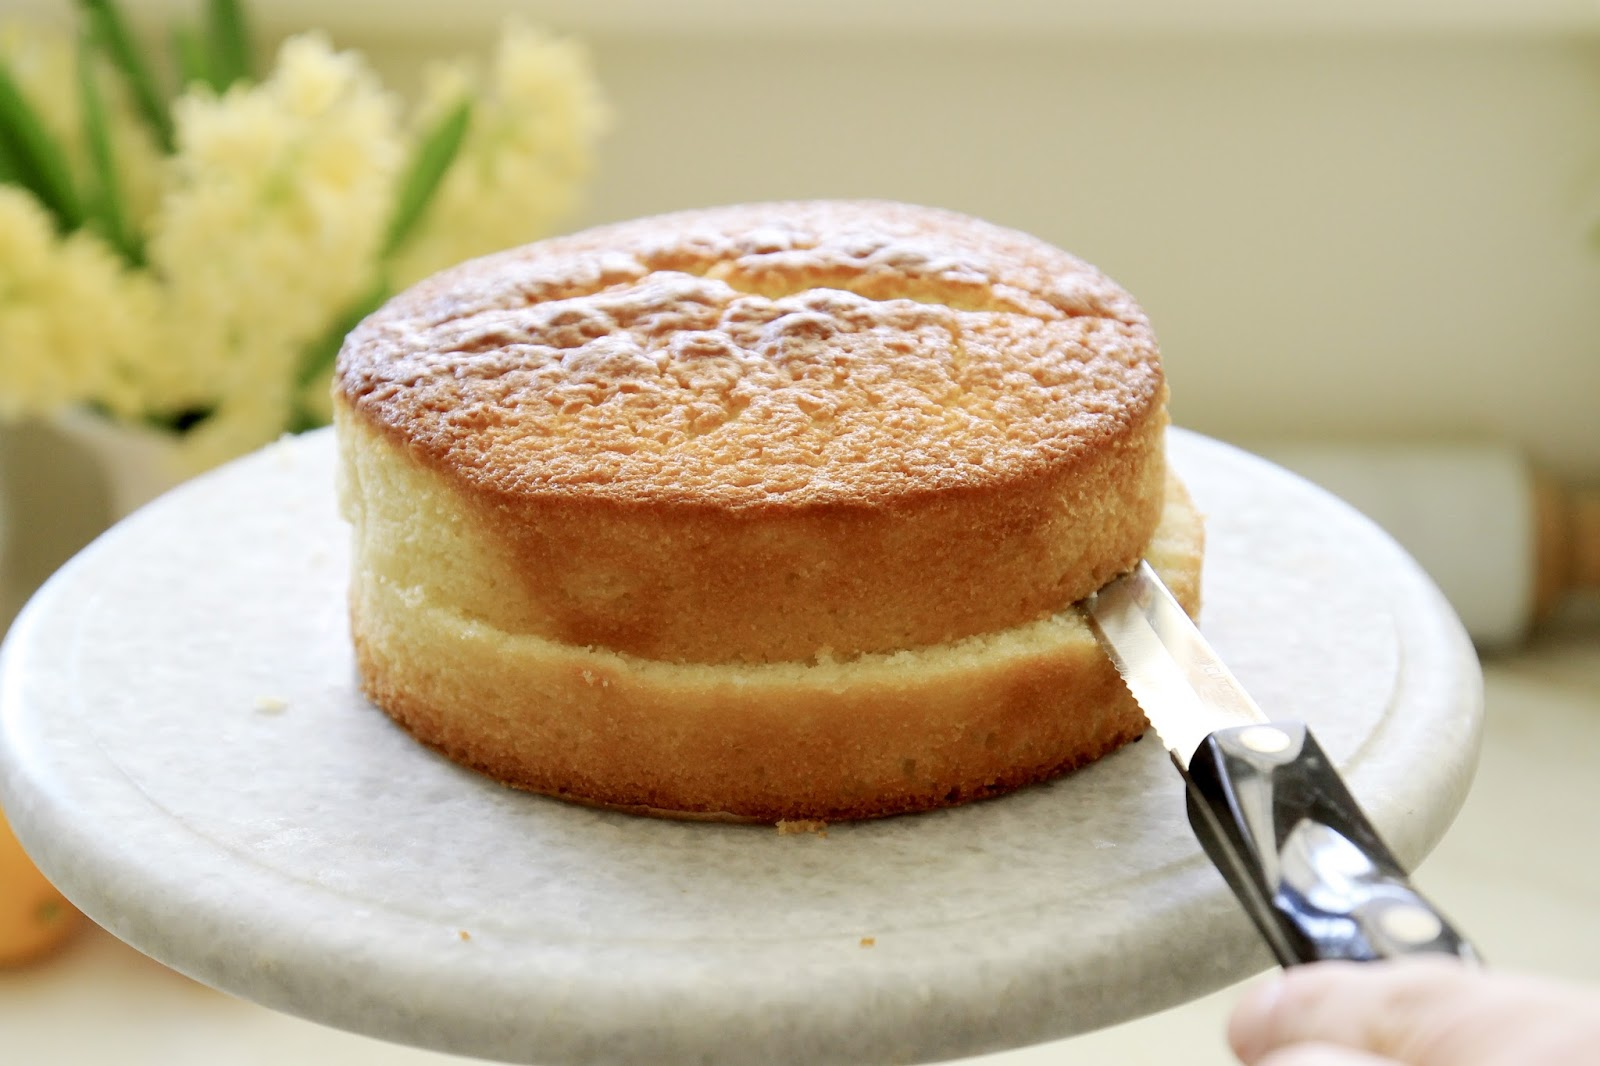 Cake Pan That Lifts Out